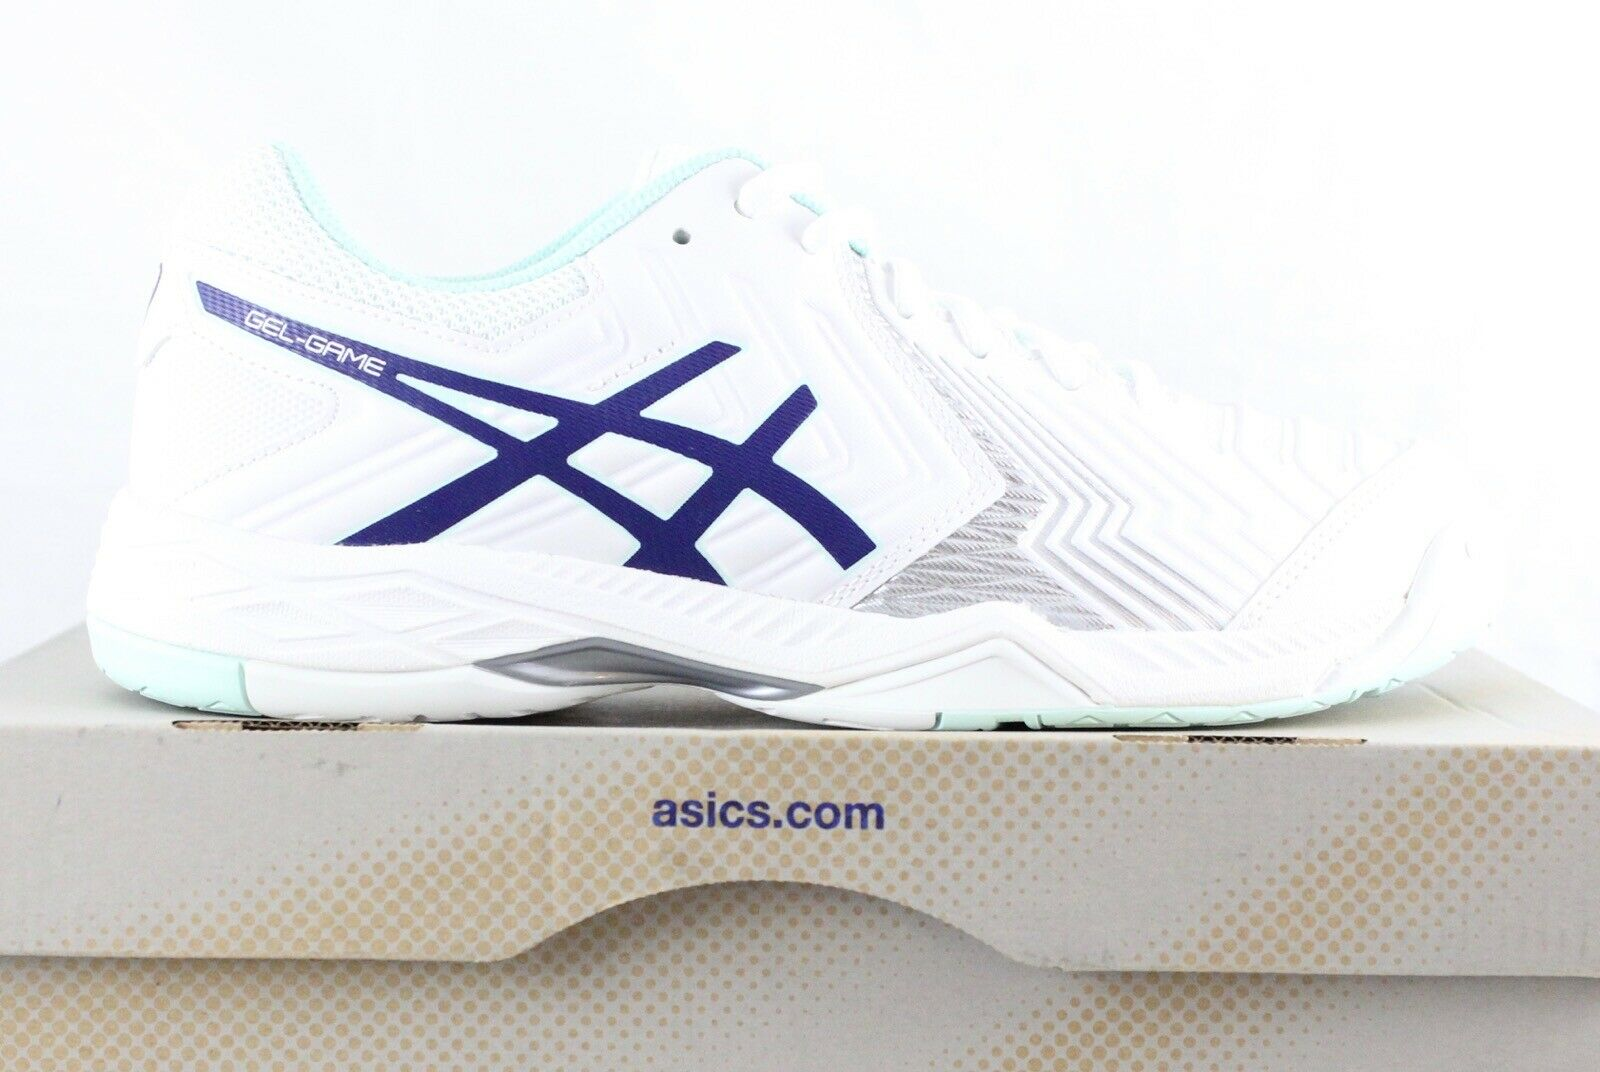 Asics Gel Game 6 E755Y White bluee Silver Womens shoes Size 8.5 BRAND NEW IN BOX